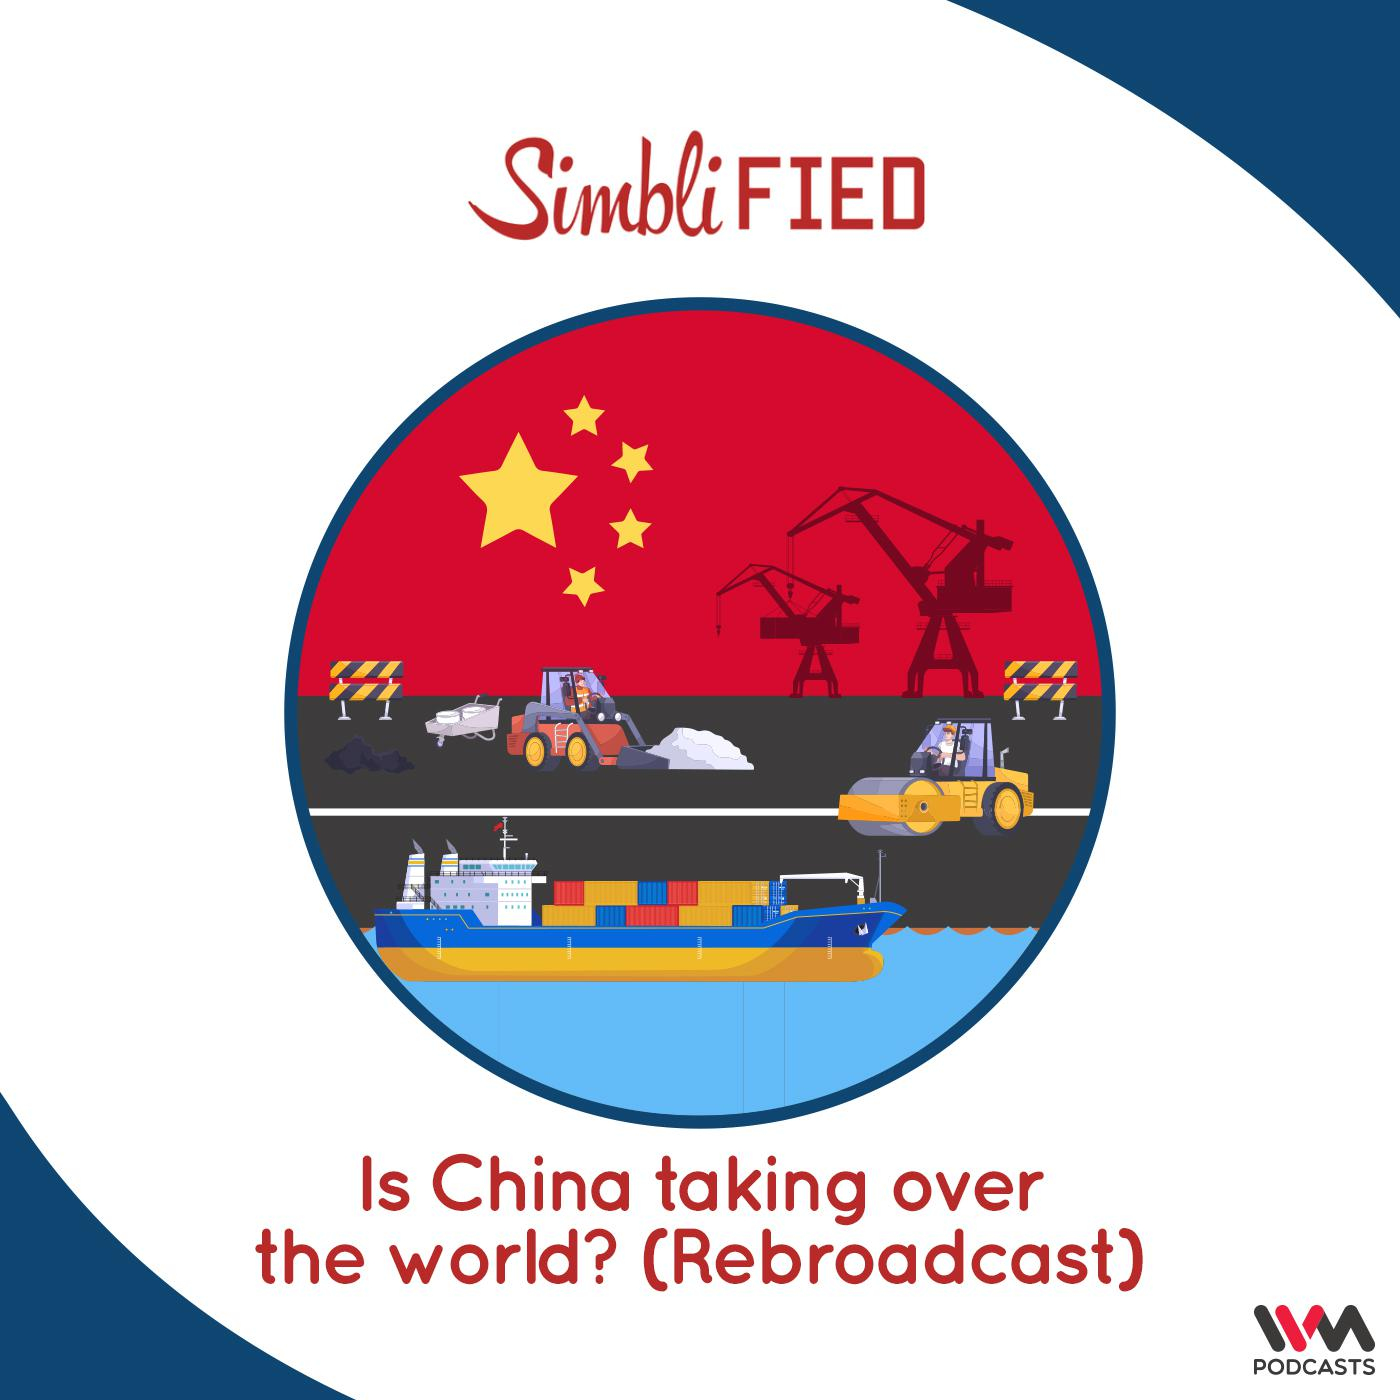 Is China taking over the world? (Rebroadcast)